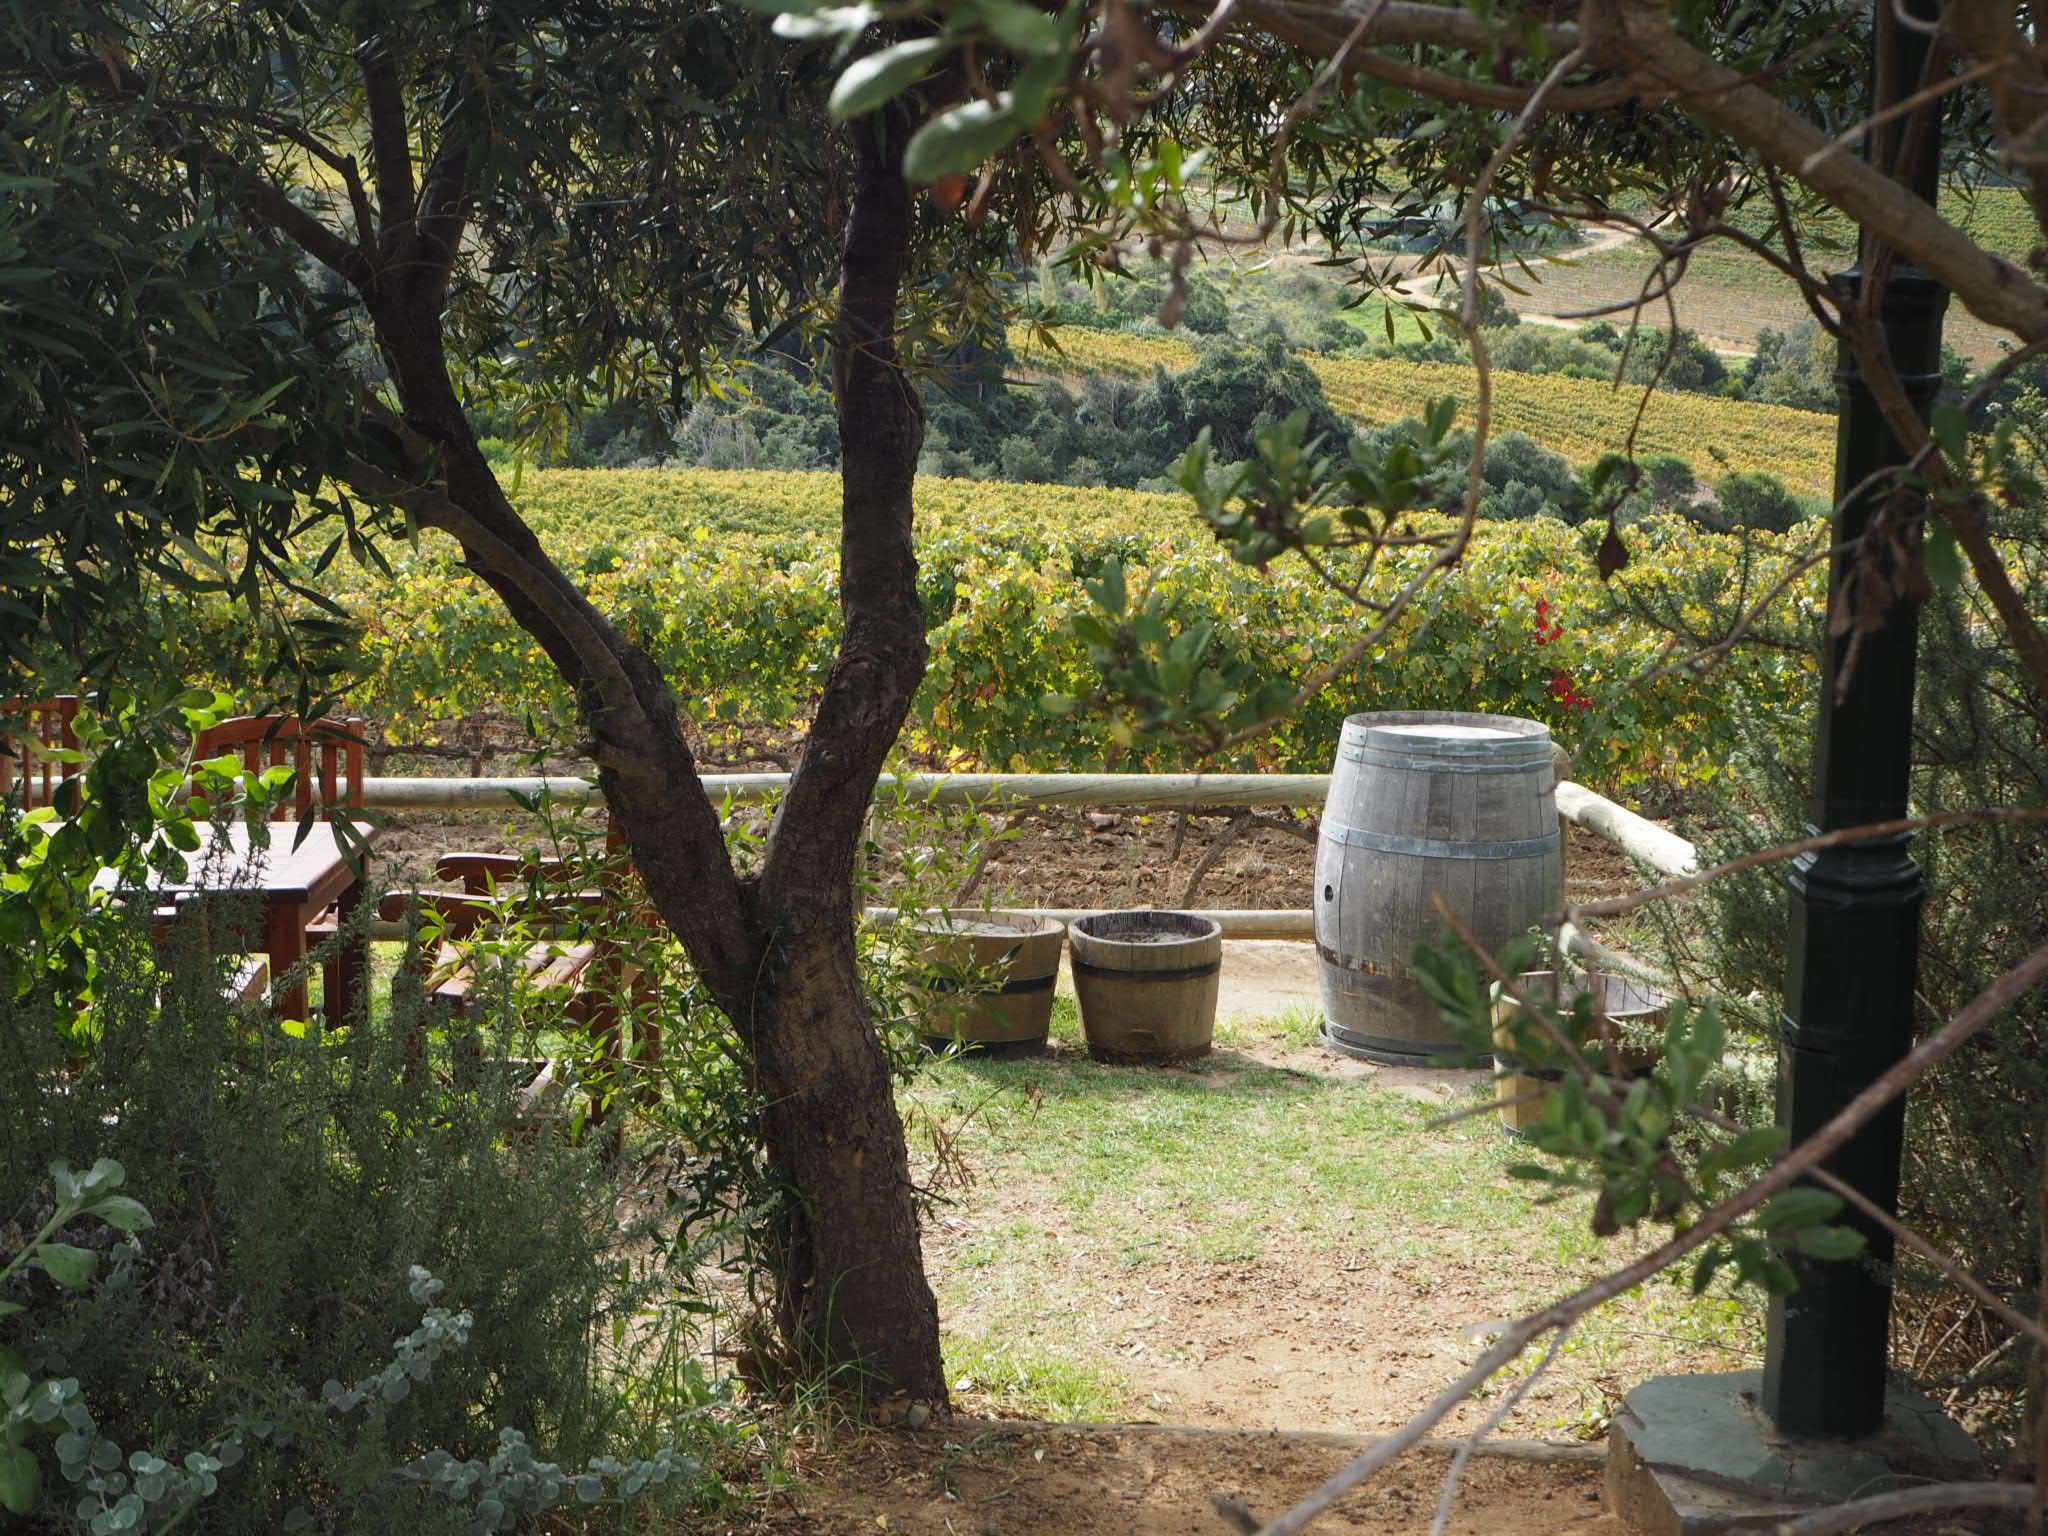 Idyllic spot for afternoon wine.